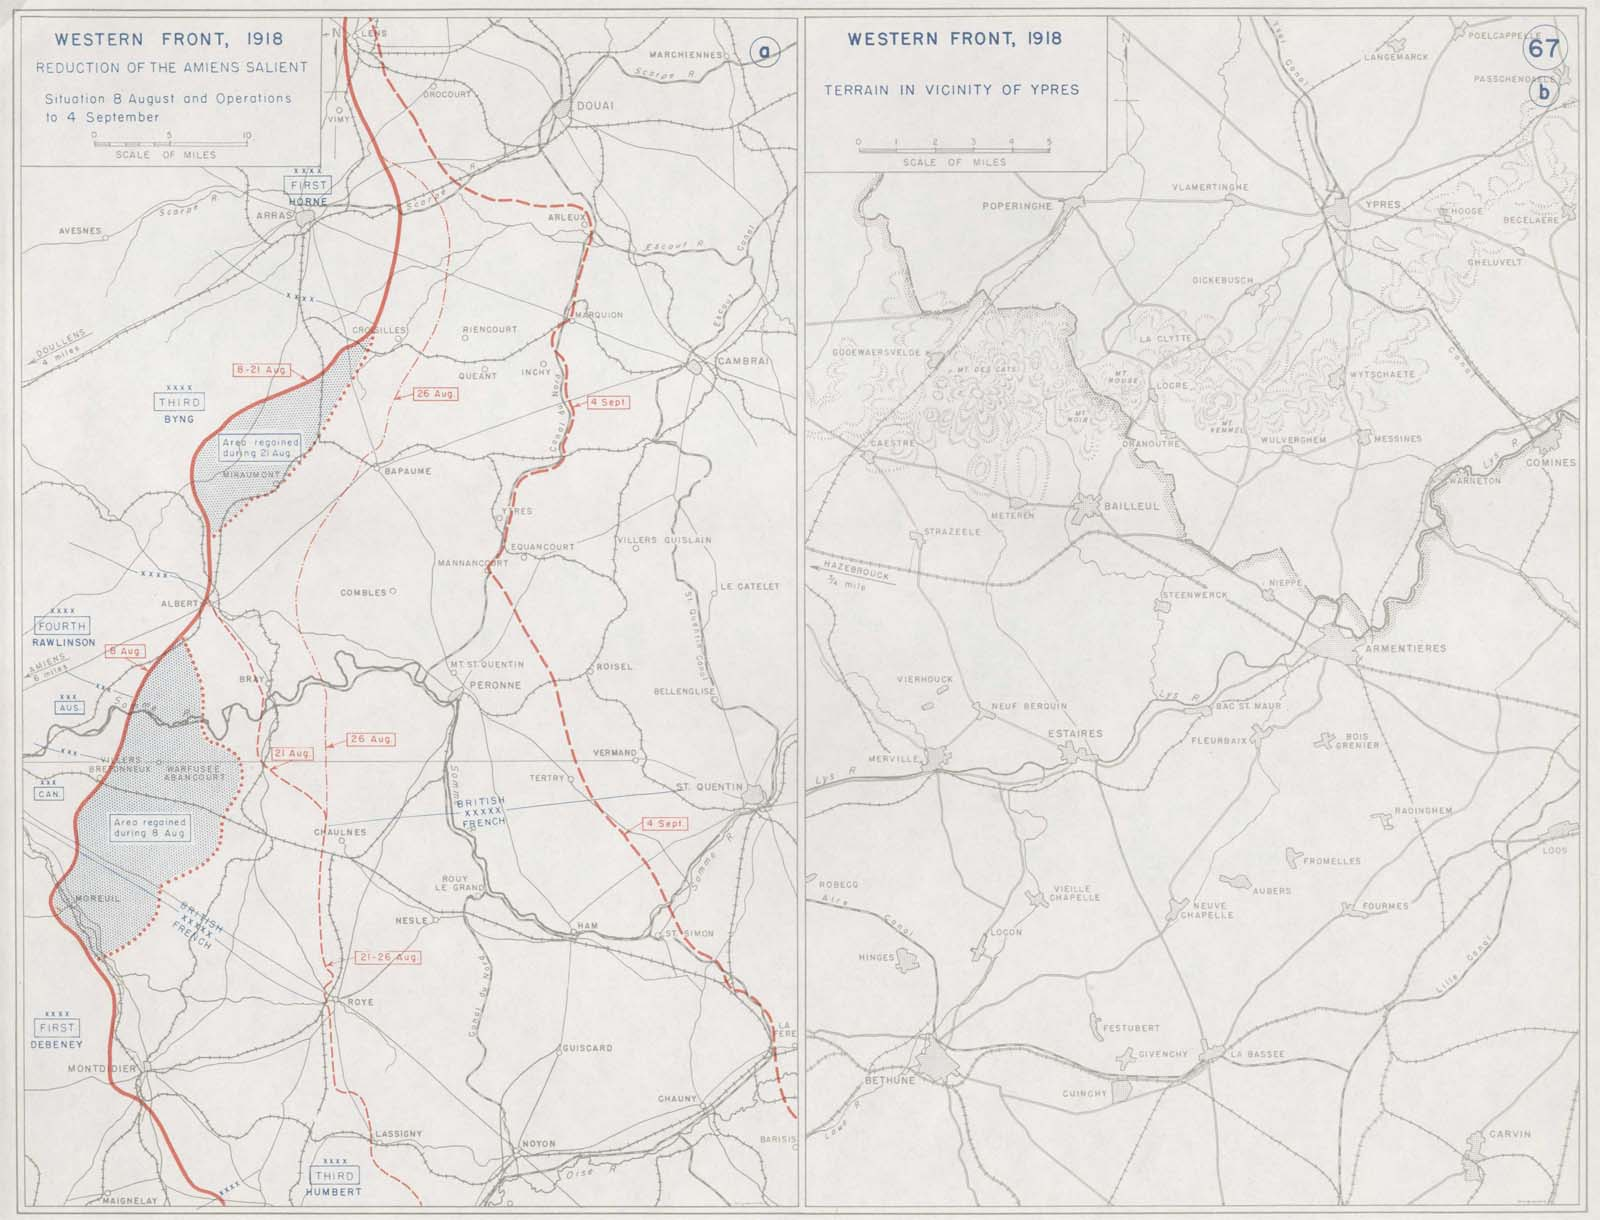 meuse argonne offensive that turned to massive attack by the allied forces Marshall in 1919 described this as the hinge of the entire allied offensive for their massive attacks touched off by the meuse-argonne offensive the allies could now draw on 2 1 7 divisions on the western st-mihiel and the meuse-argonnepdf collection pogue biographies.